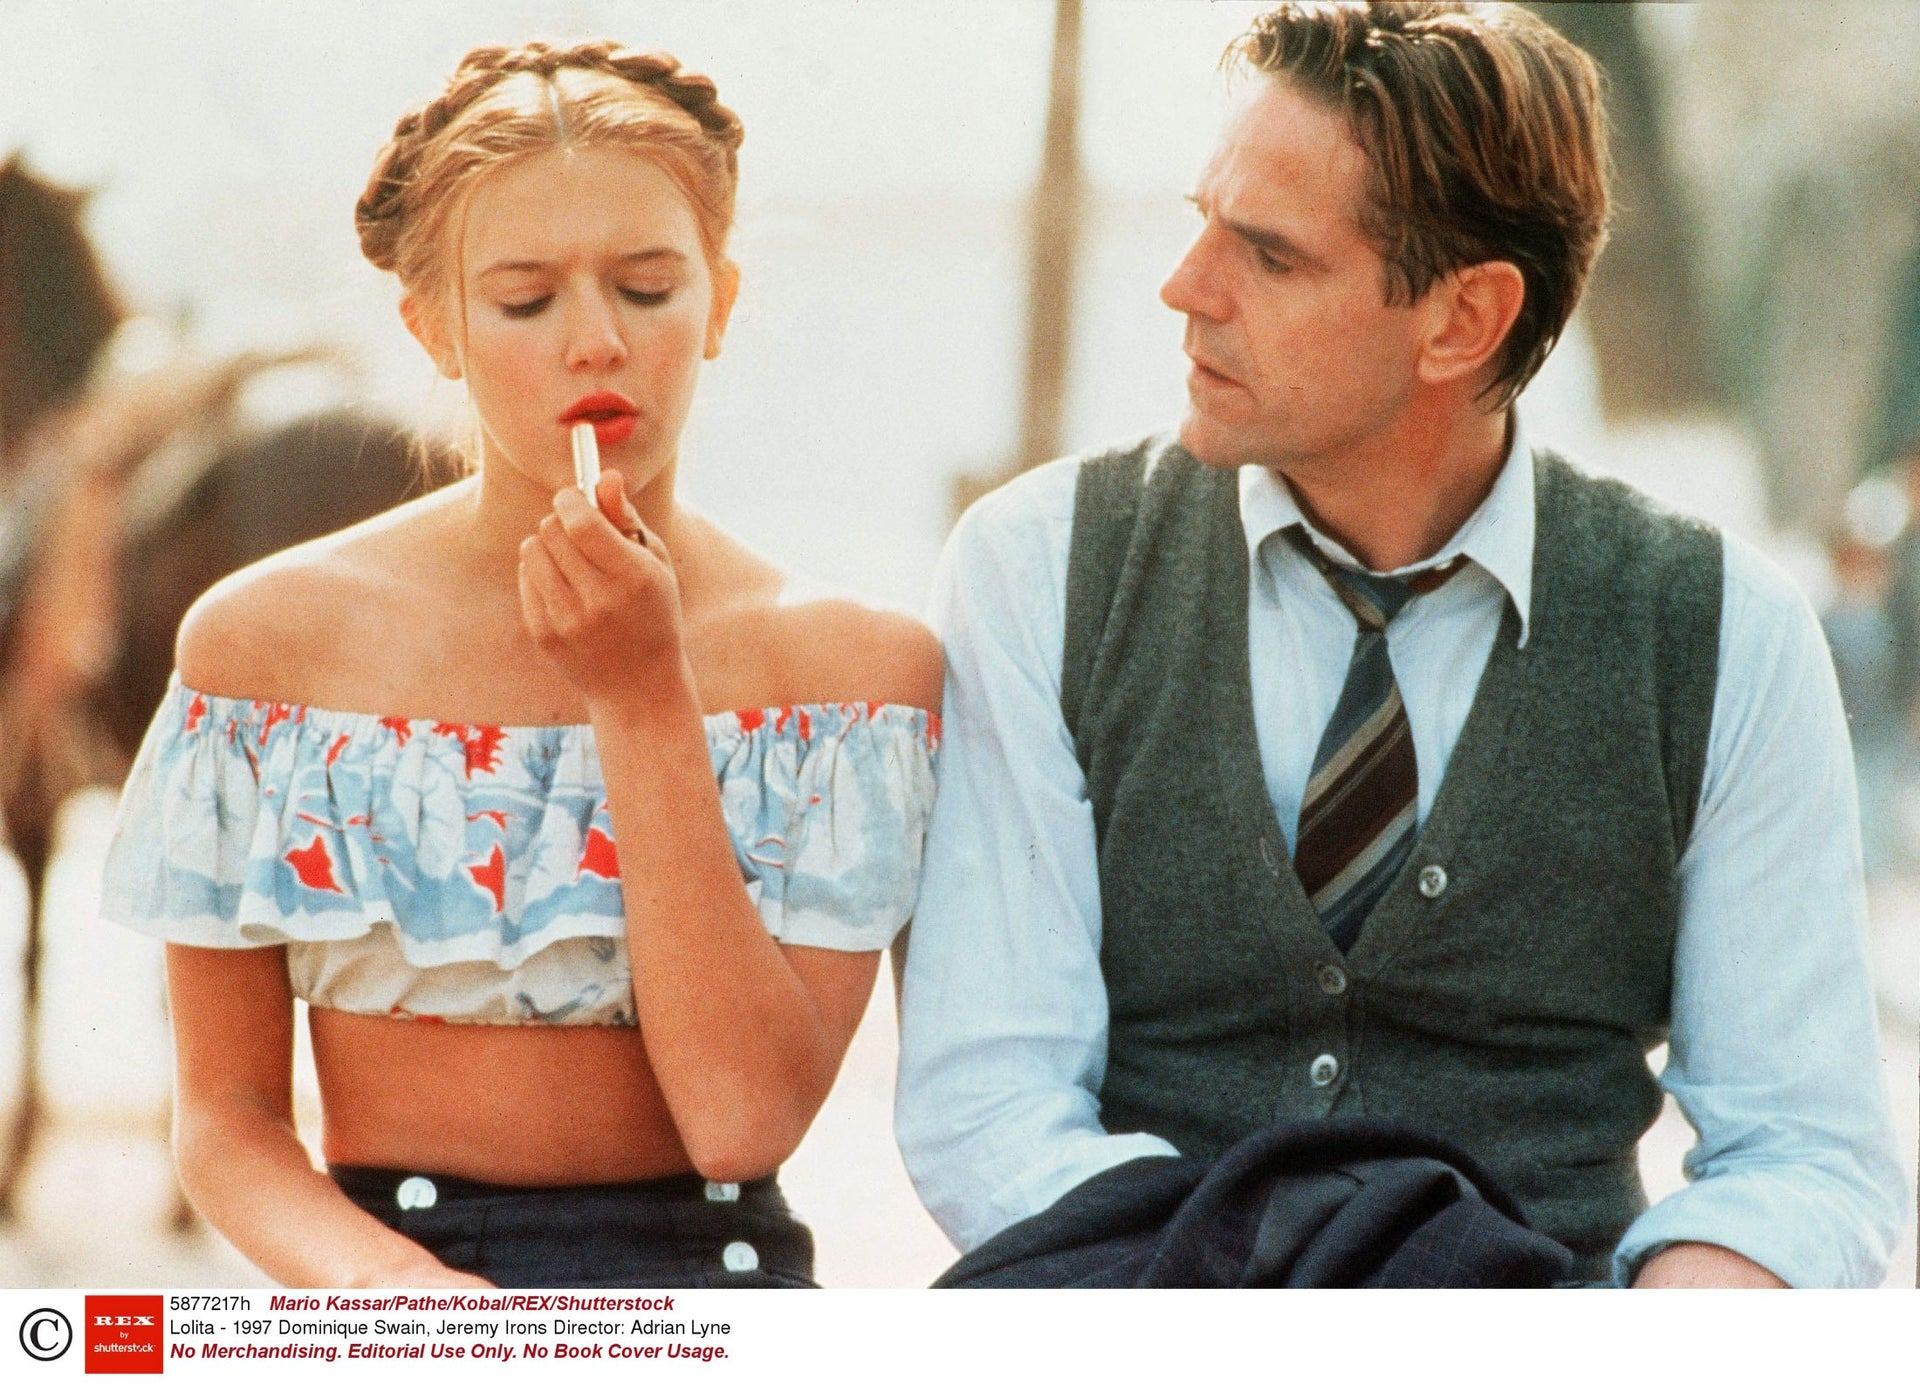 Dominique Swain and Jeremy Irons in the 1997 'Lolita.'